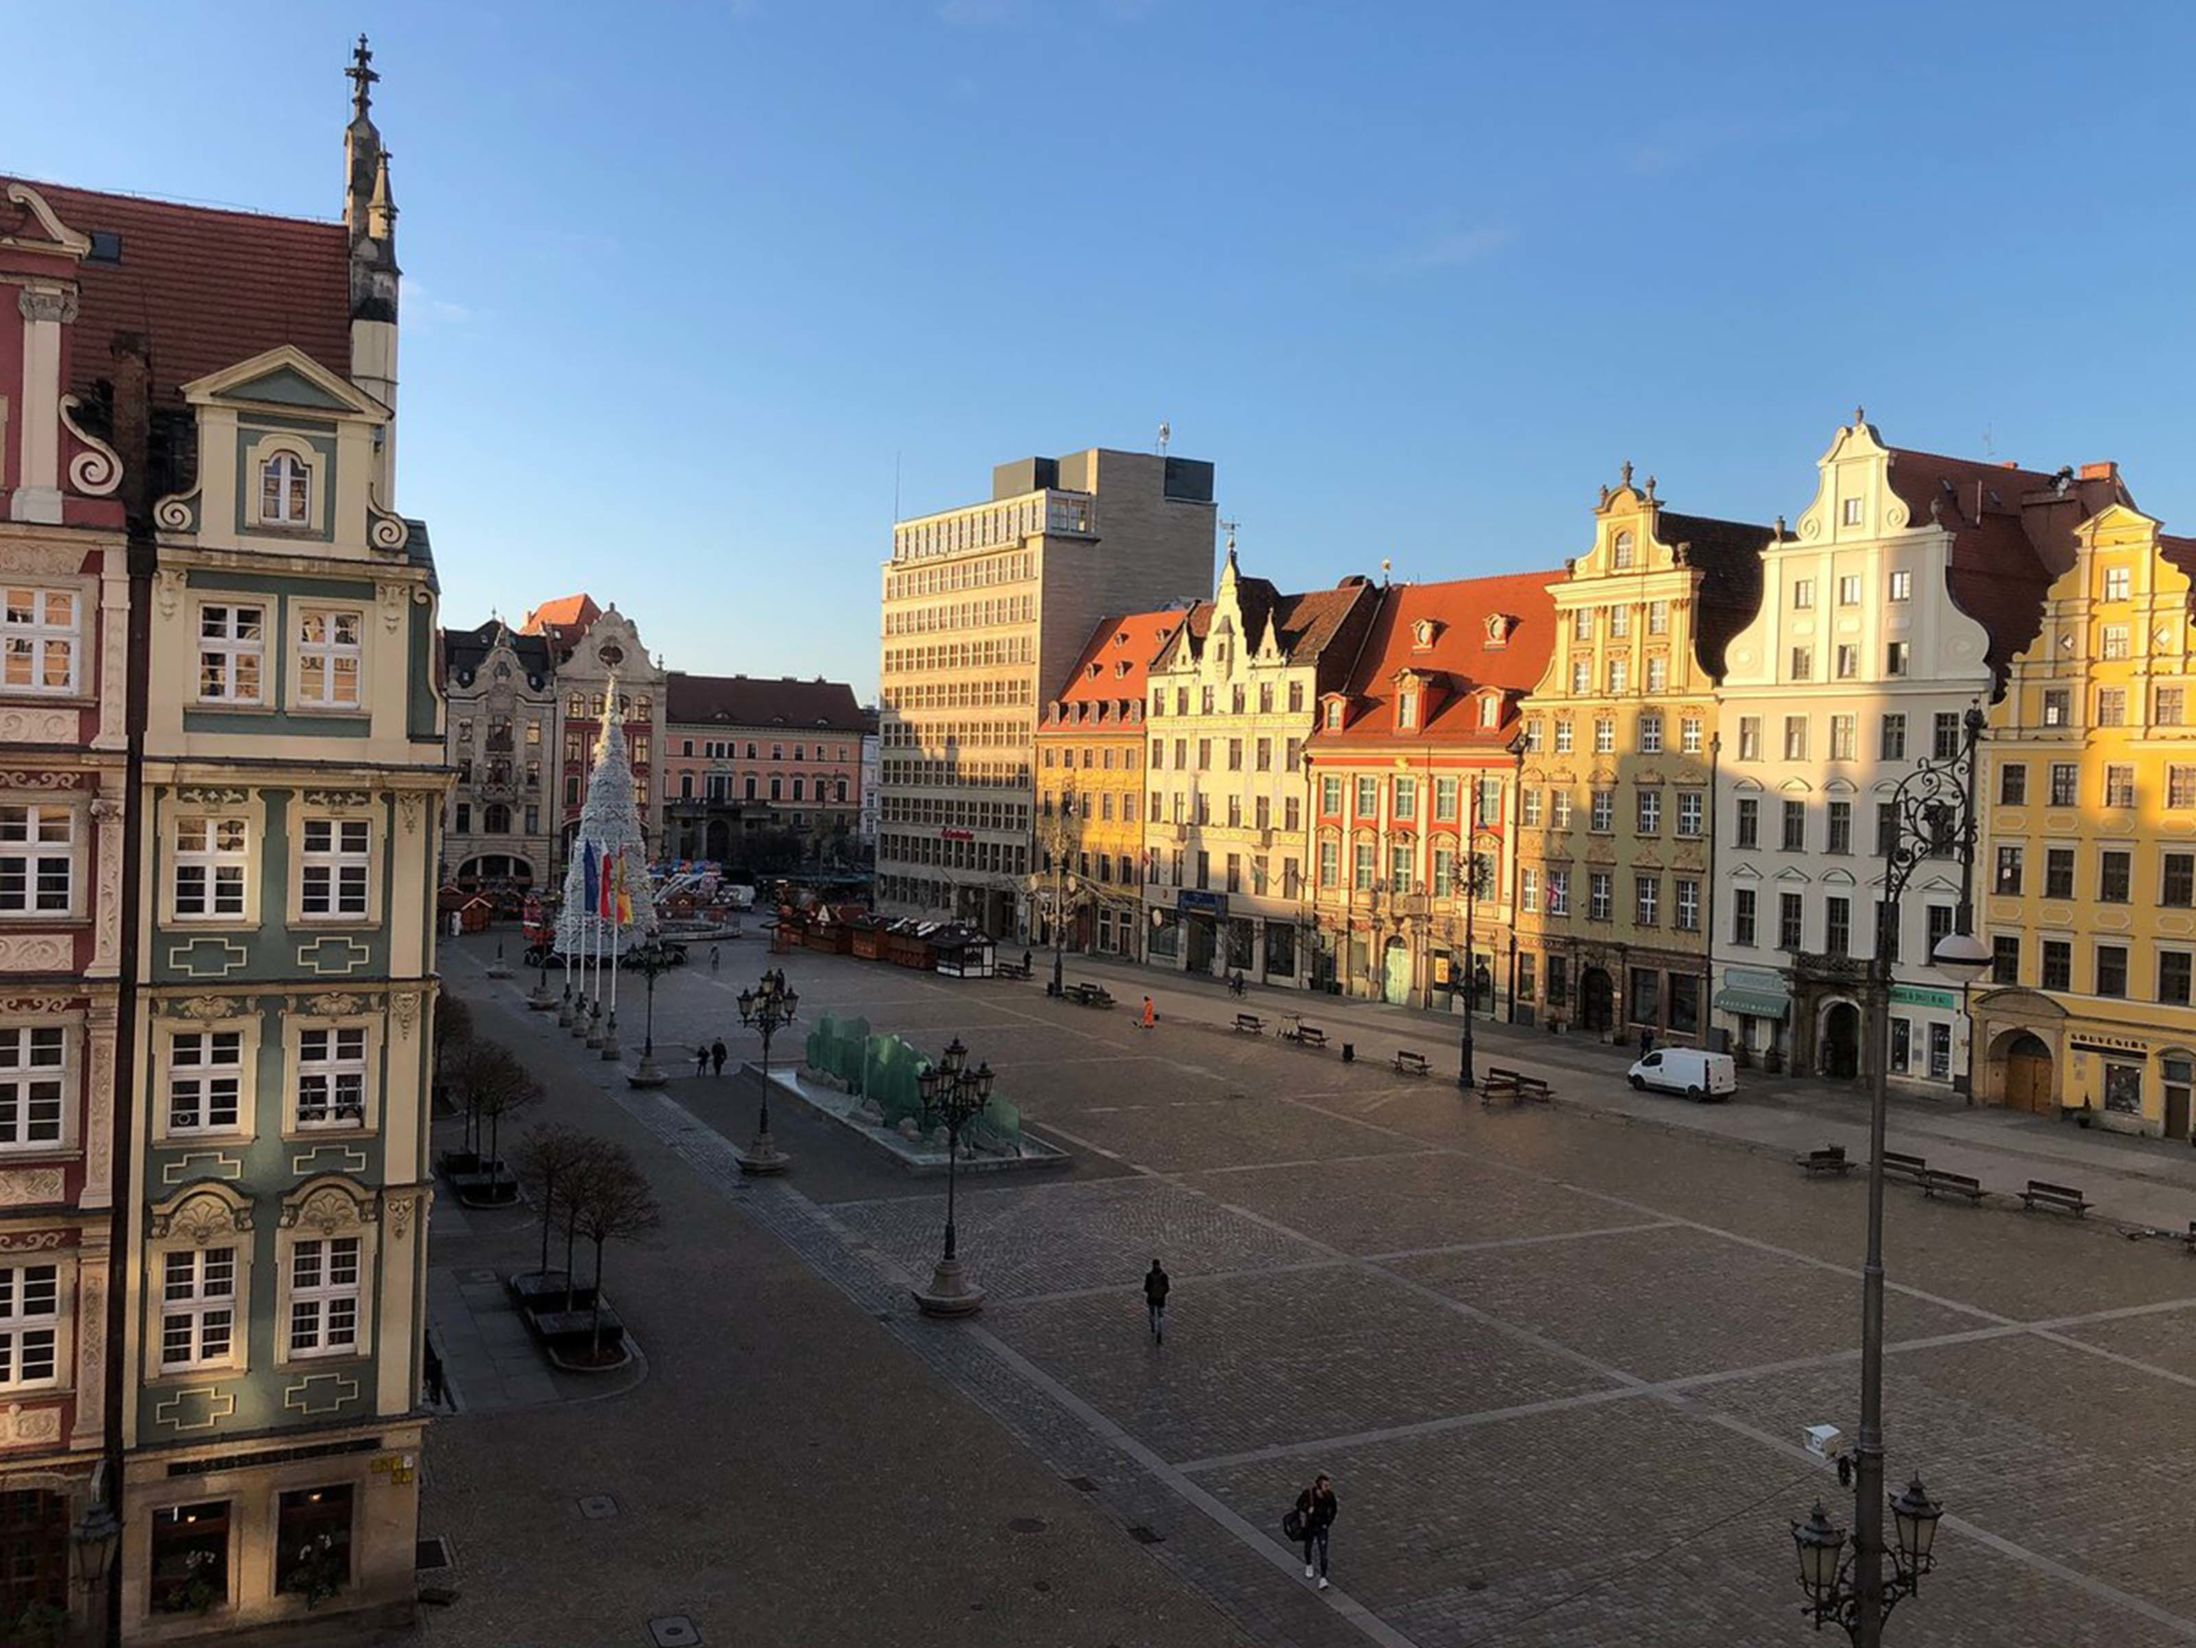 Things to do in Wroclaw - Market Square